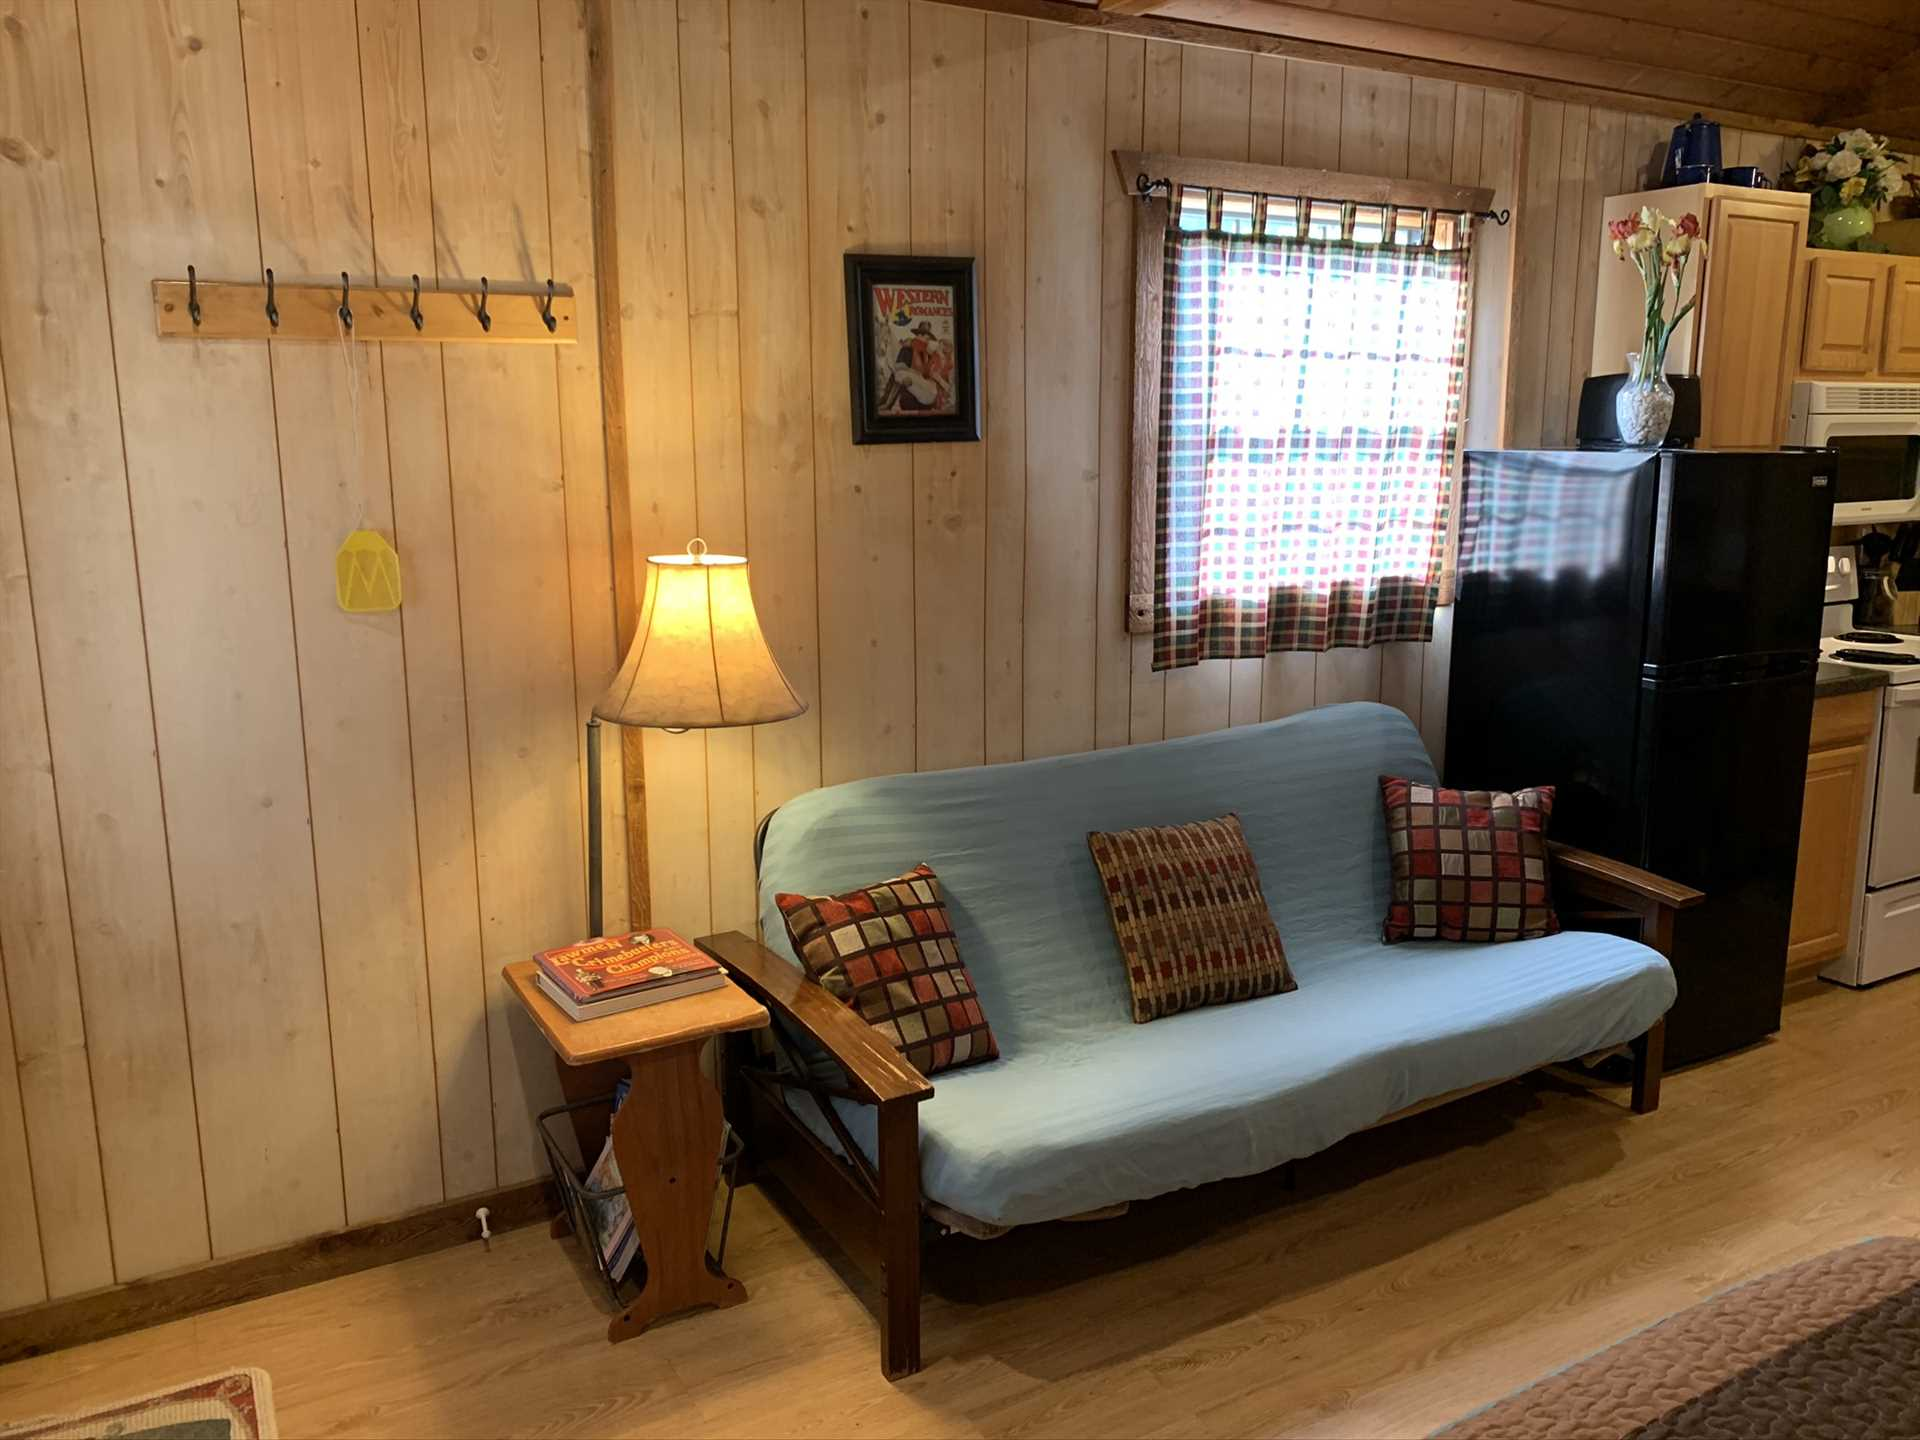 New AC and heat box units keep the cabin just right, and you'll have a satellite TV and Wifi Internet service, too!